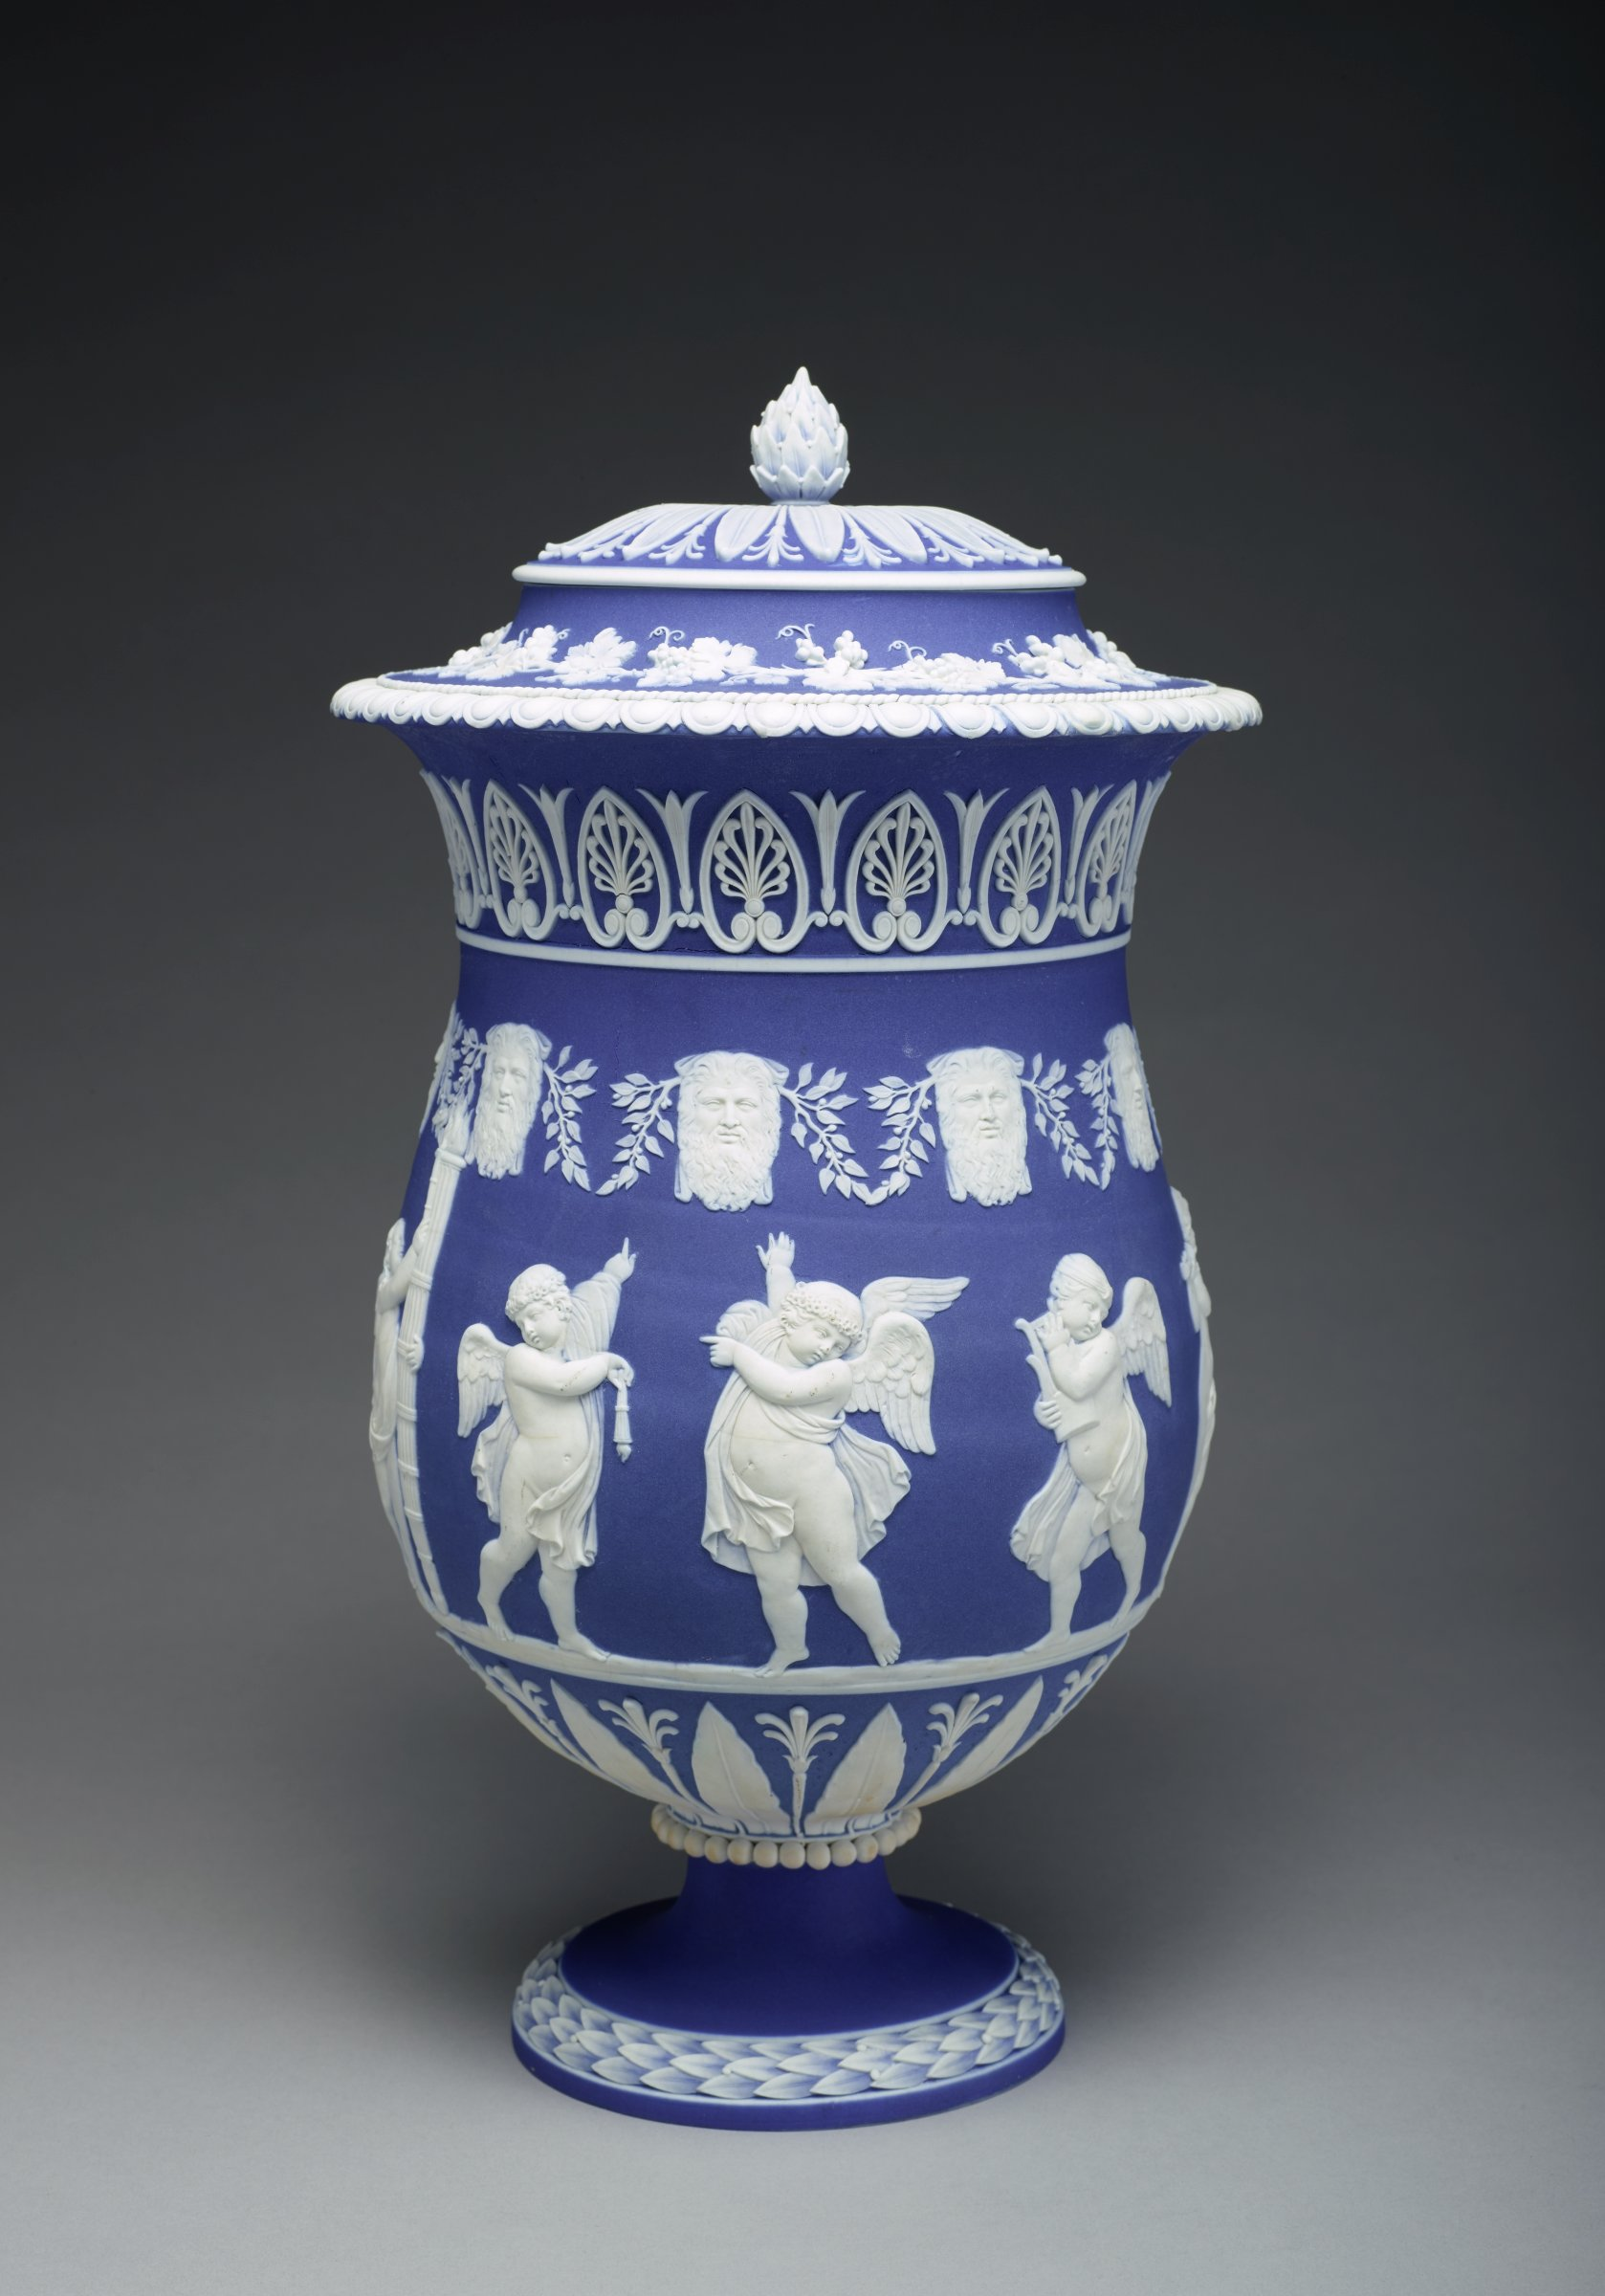 """Tall, footed vase with cover in a deep blue and white jasper dip, the edge of the foot is decorated in white relief with a band of overlapping leaves and berries delicately shaded to give the impression of translucency, the stem features a band of beading where it meets the body, the lower body is decorated in a stiff leaf / lotus pattern, the main body is decorated in the round with a group of cherubs, or """"geniuses"""" each carrying symbolic objects or playing musical instruments; above the figures is a border of nine bearded men interspersed with laurel branches and above this a border of anthemion motifs, the upper edge of the vase is decorated with an egg-and-dart pattern below a narrow band of ropework, the neck features a band of of grape vines and leaves with bunches of grapes, the conforming domed cover has a similar stiff leaf / lotus pattern and pine cone finial."""